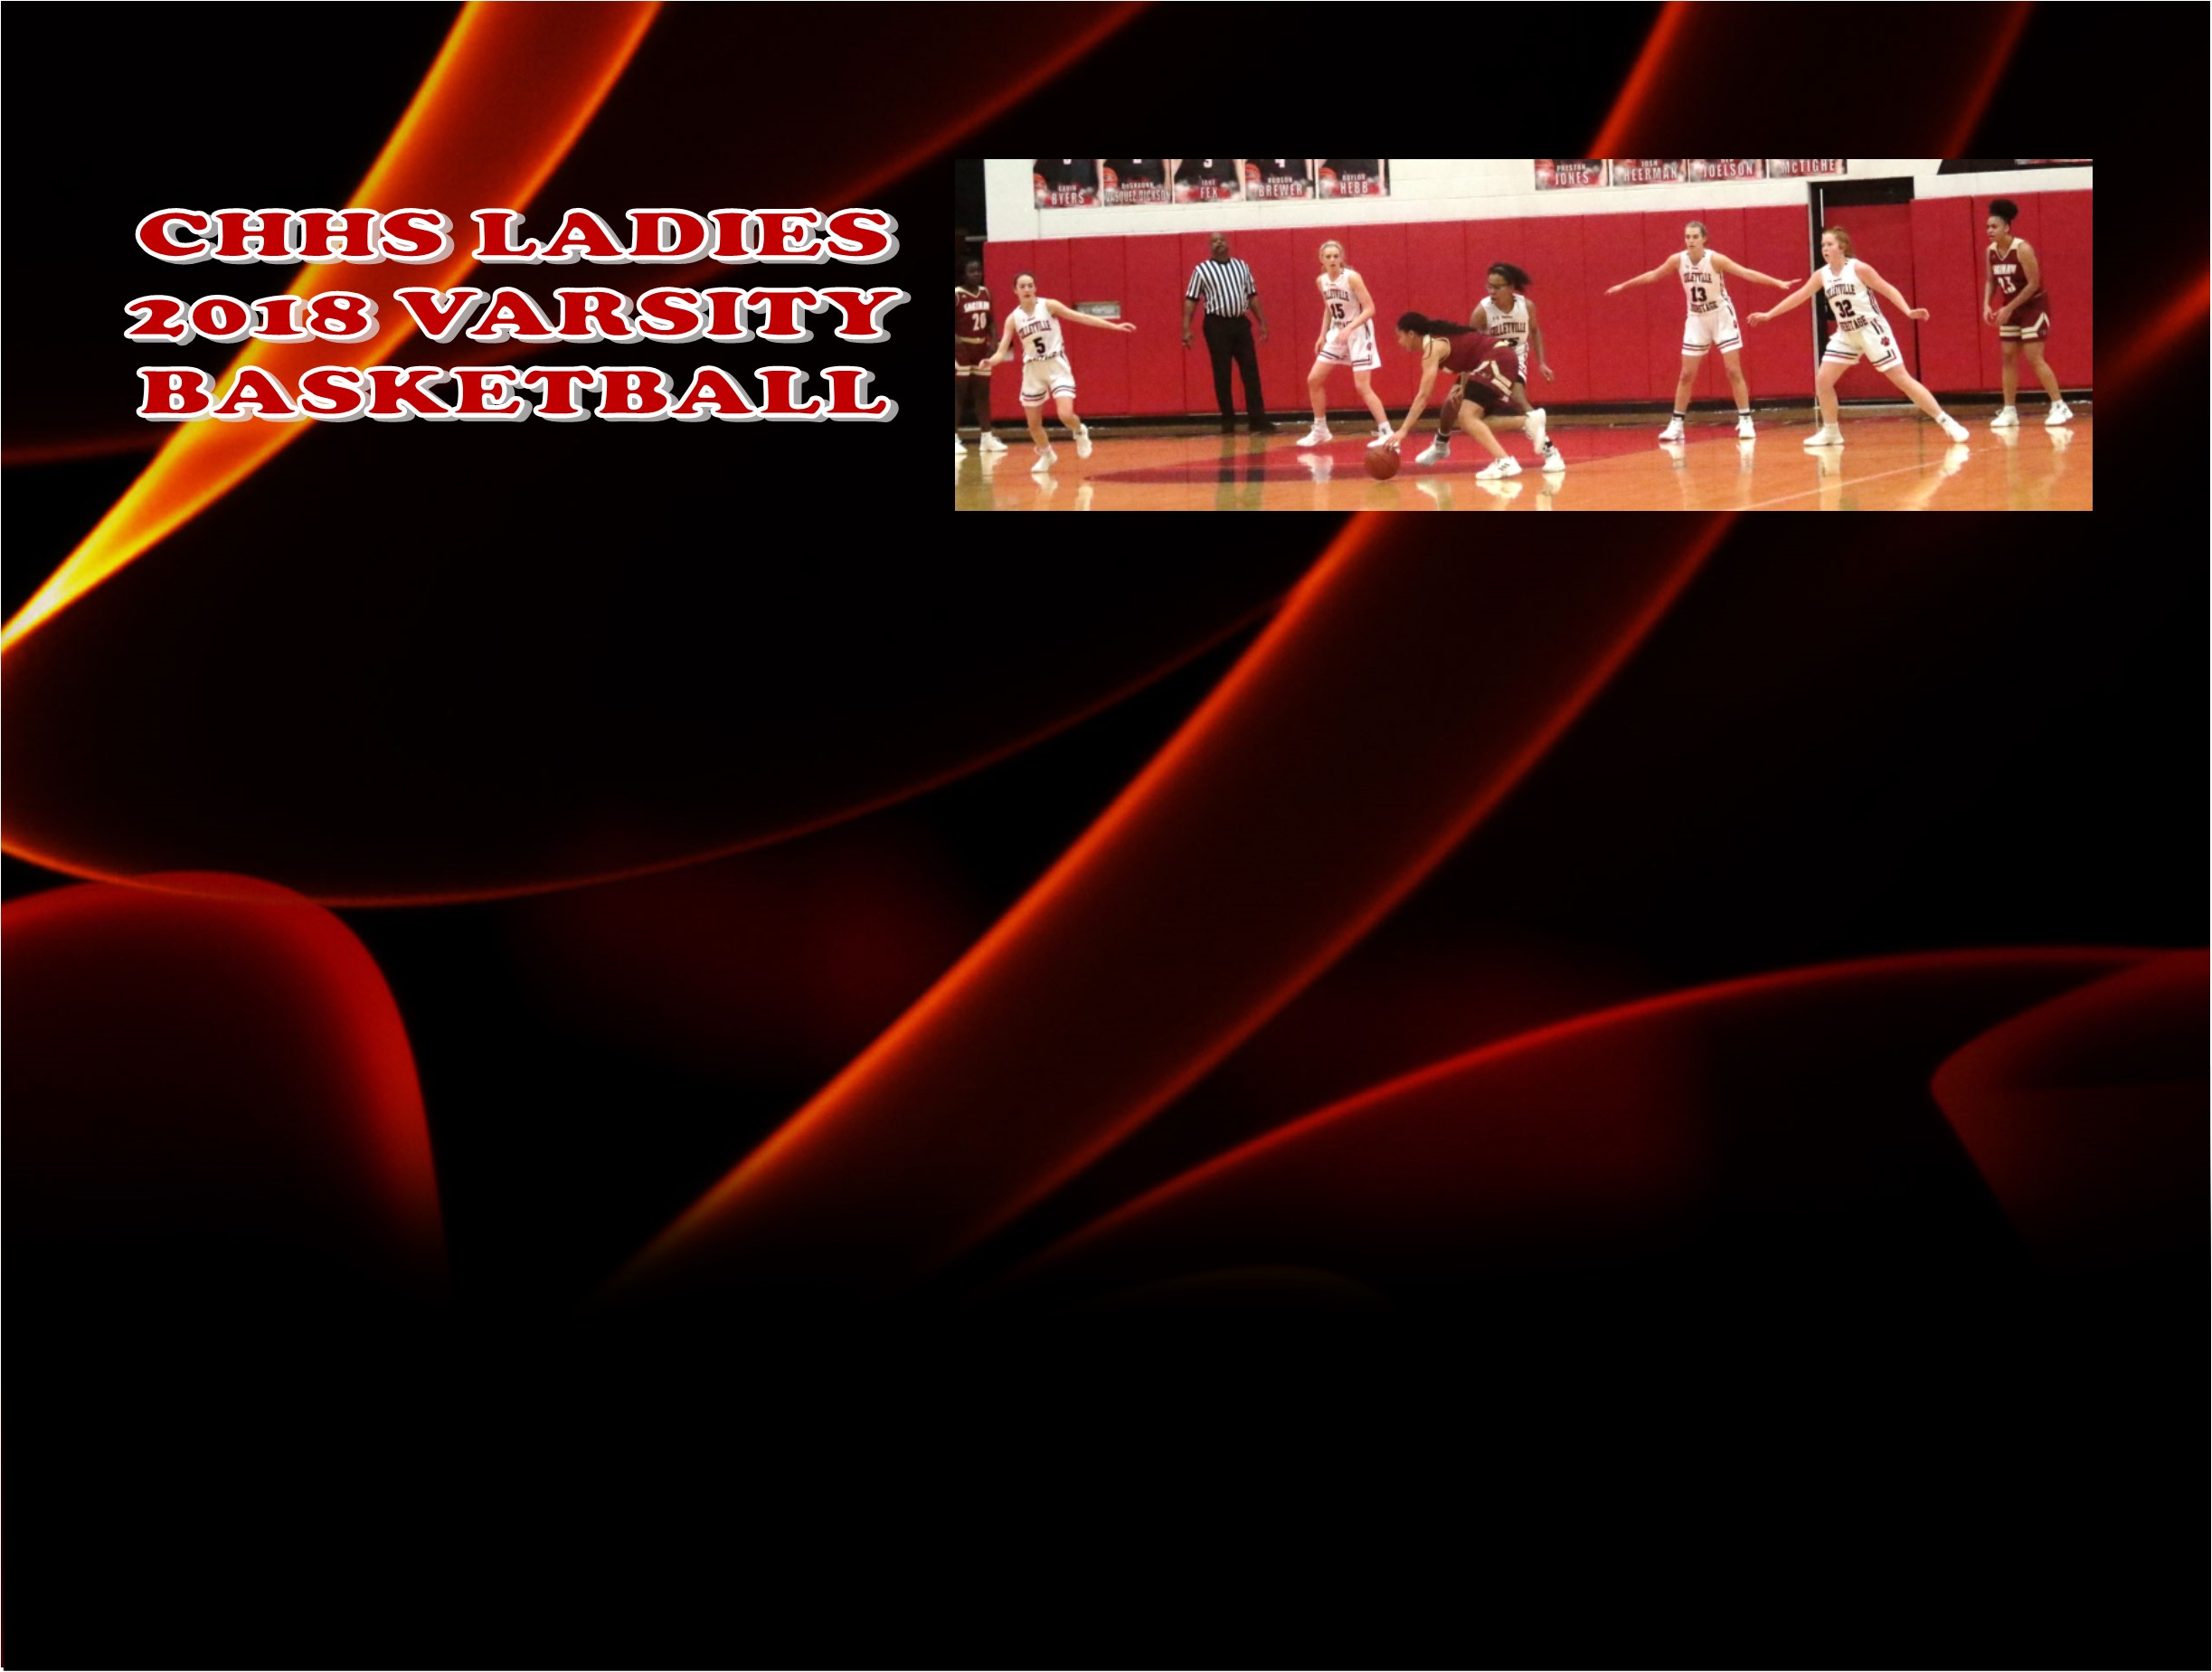 CHHS Basketball: Lady Panthers Rout Saginaw Lady Rough Riders 57-38